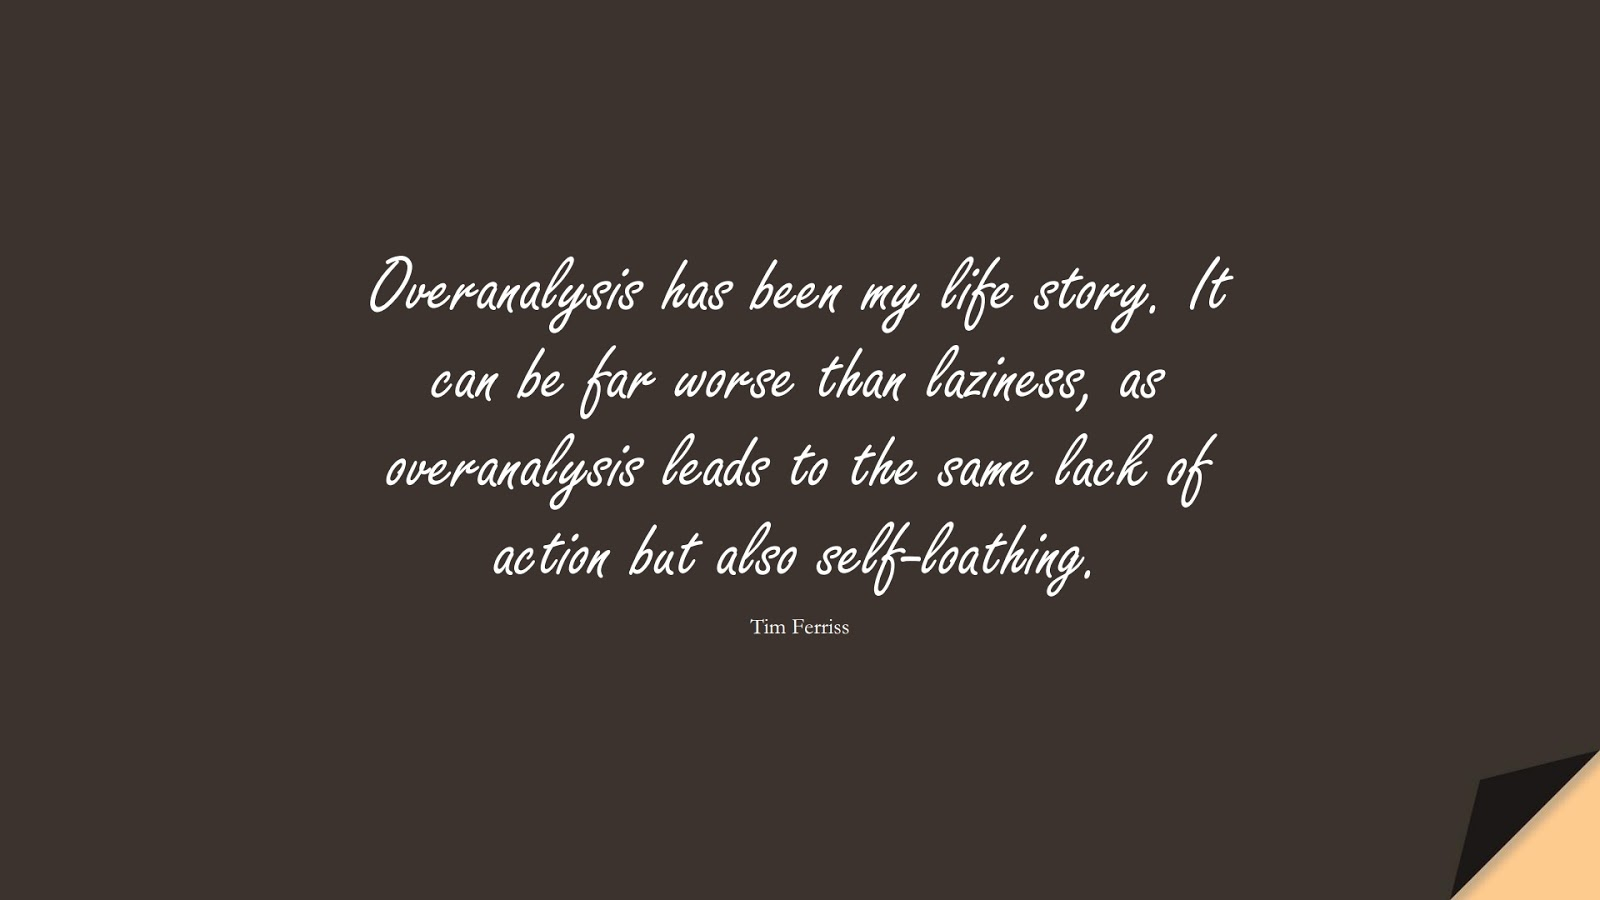 Overanalysis has been my life story. It can be far worse than laziness, as overanalysis leads to the same lack of action but also self-loathing. (Tim Ferriss);  #TimFerrissQuotes